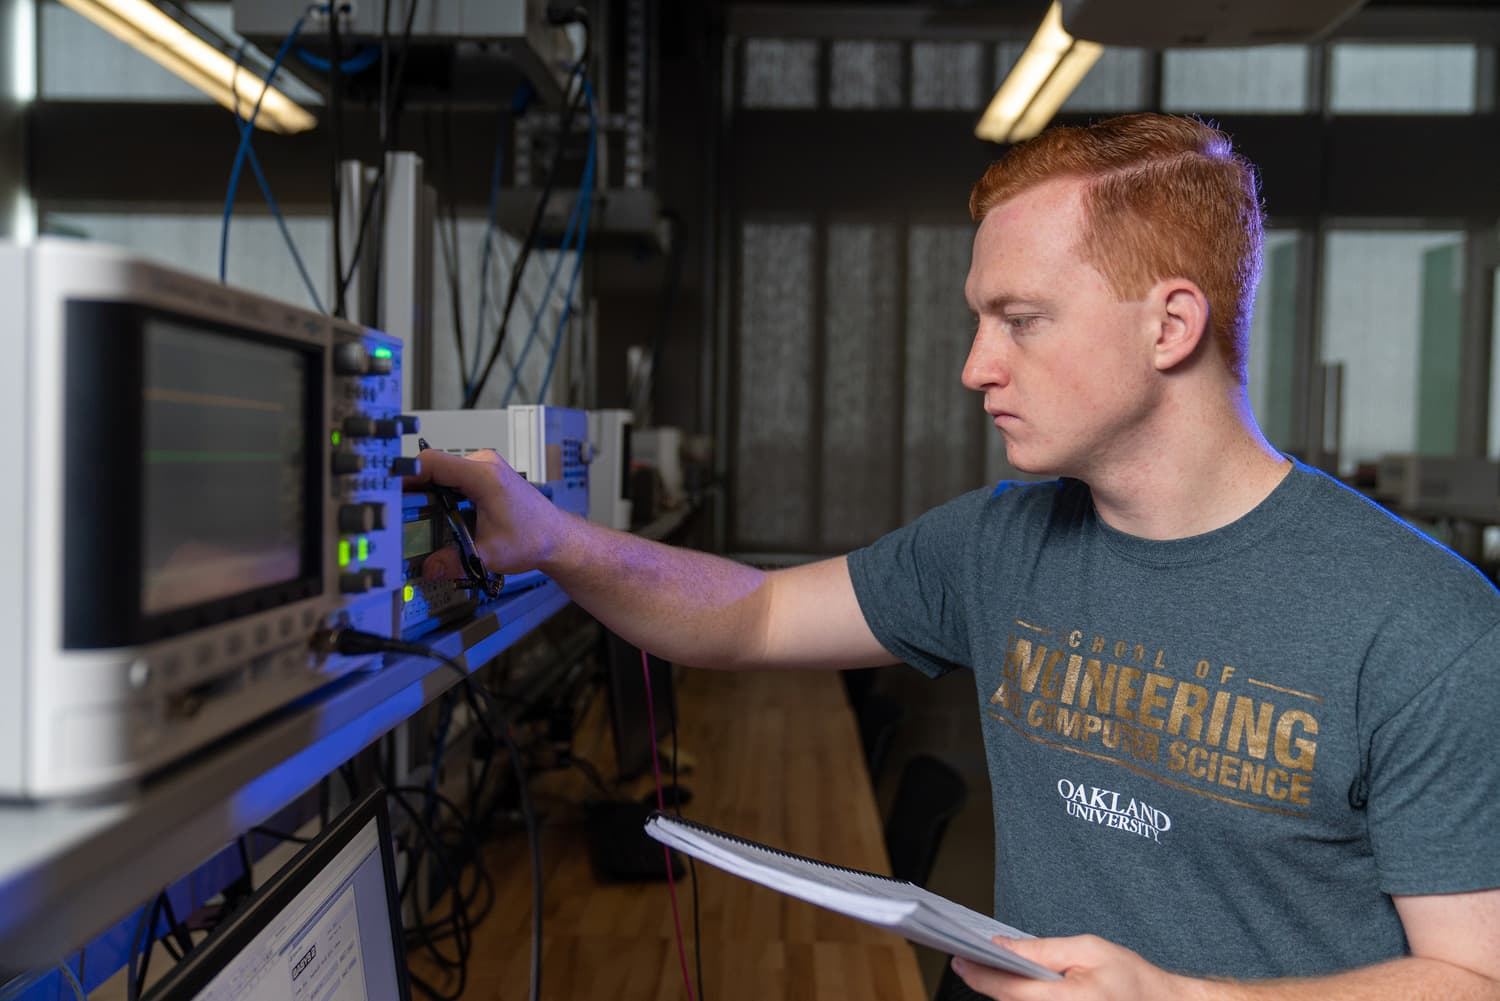 engineering student working with hardware at Oakland University School of Engineering and Computer Sciences